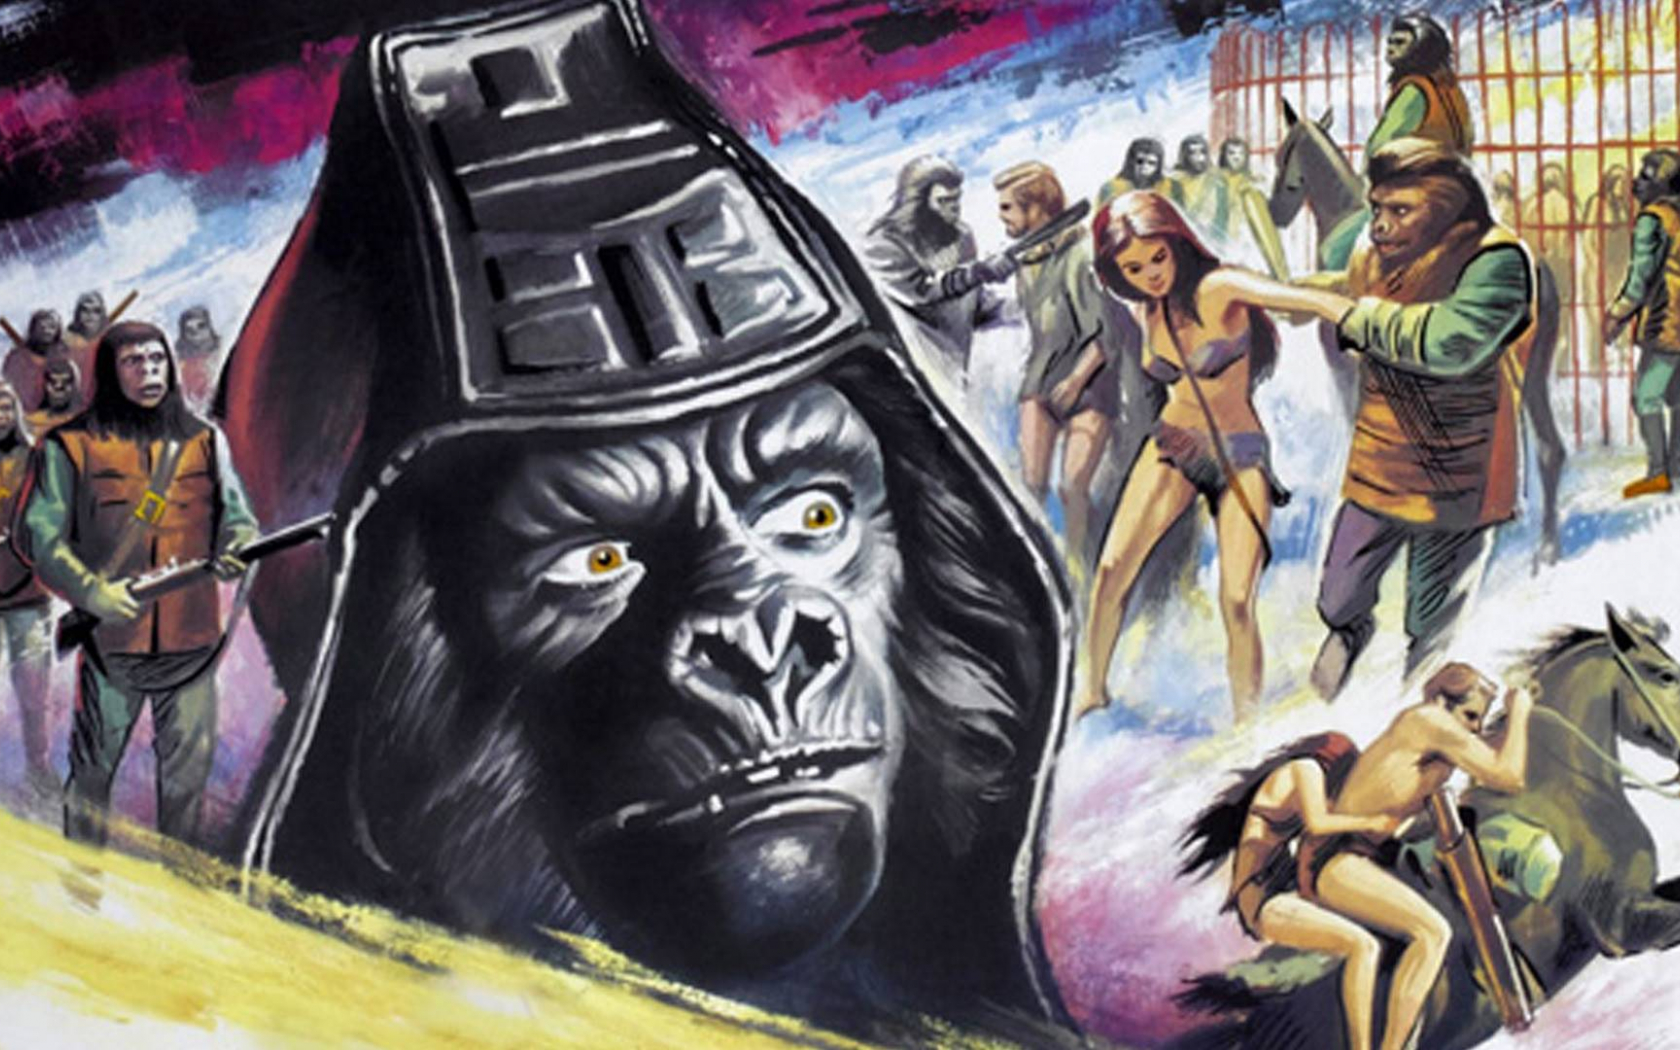 Free Download The Planet Of The Apes Wallpaper Wallpaper For